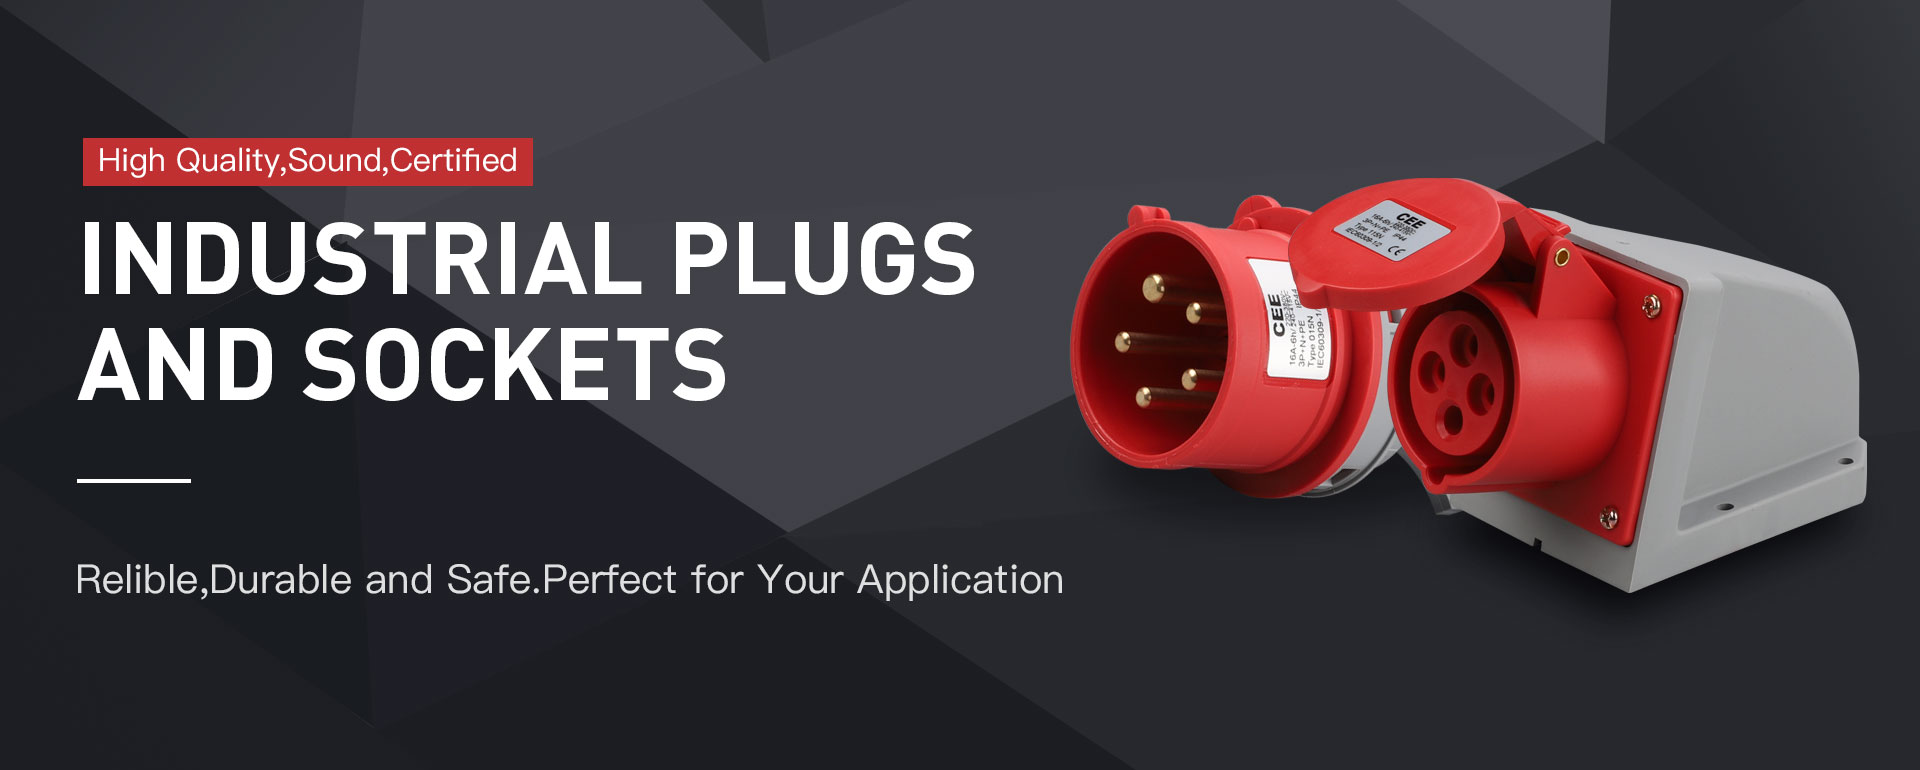 Industry plugs and sockets